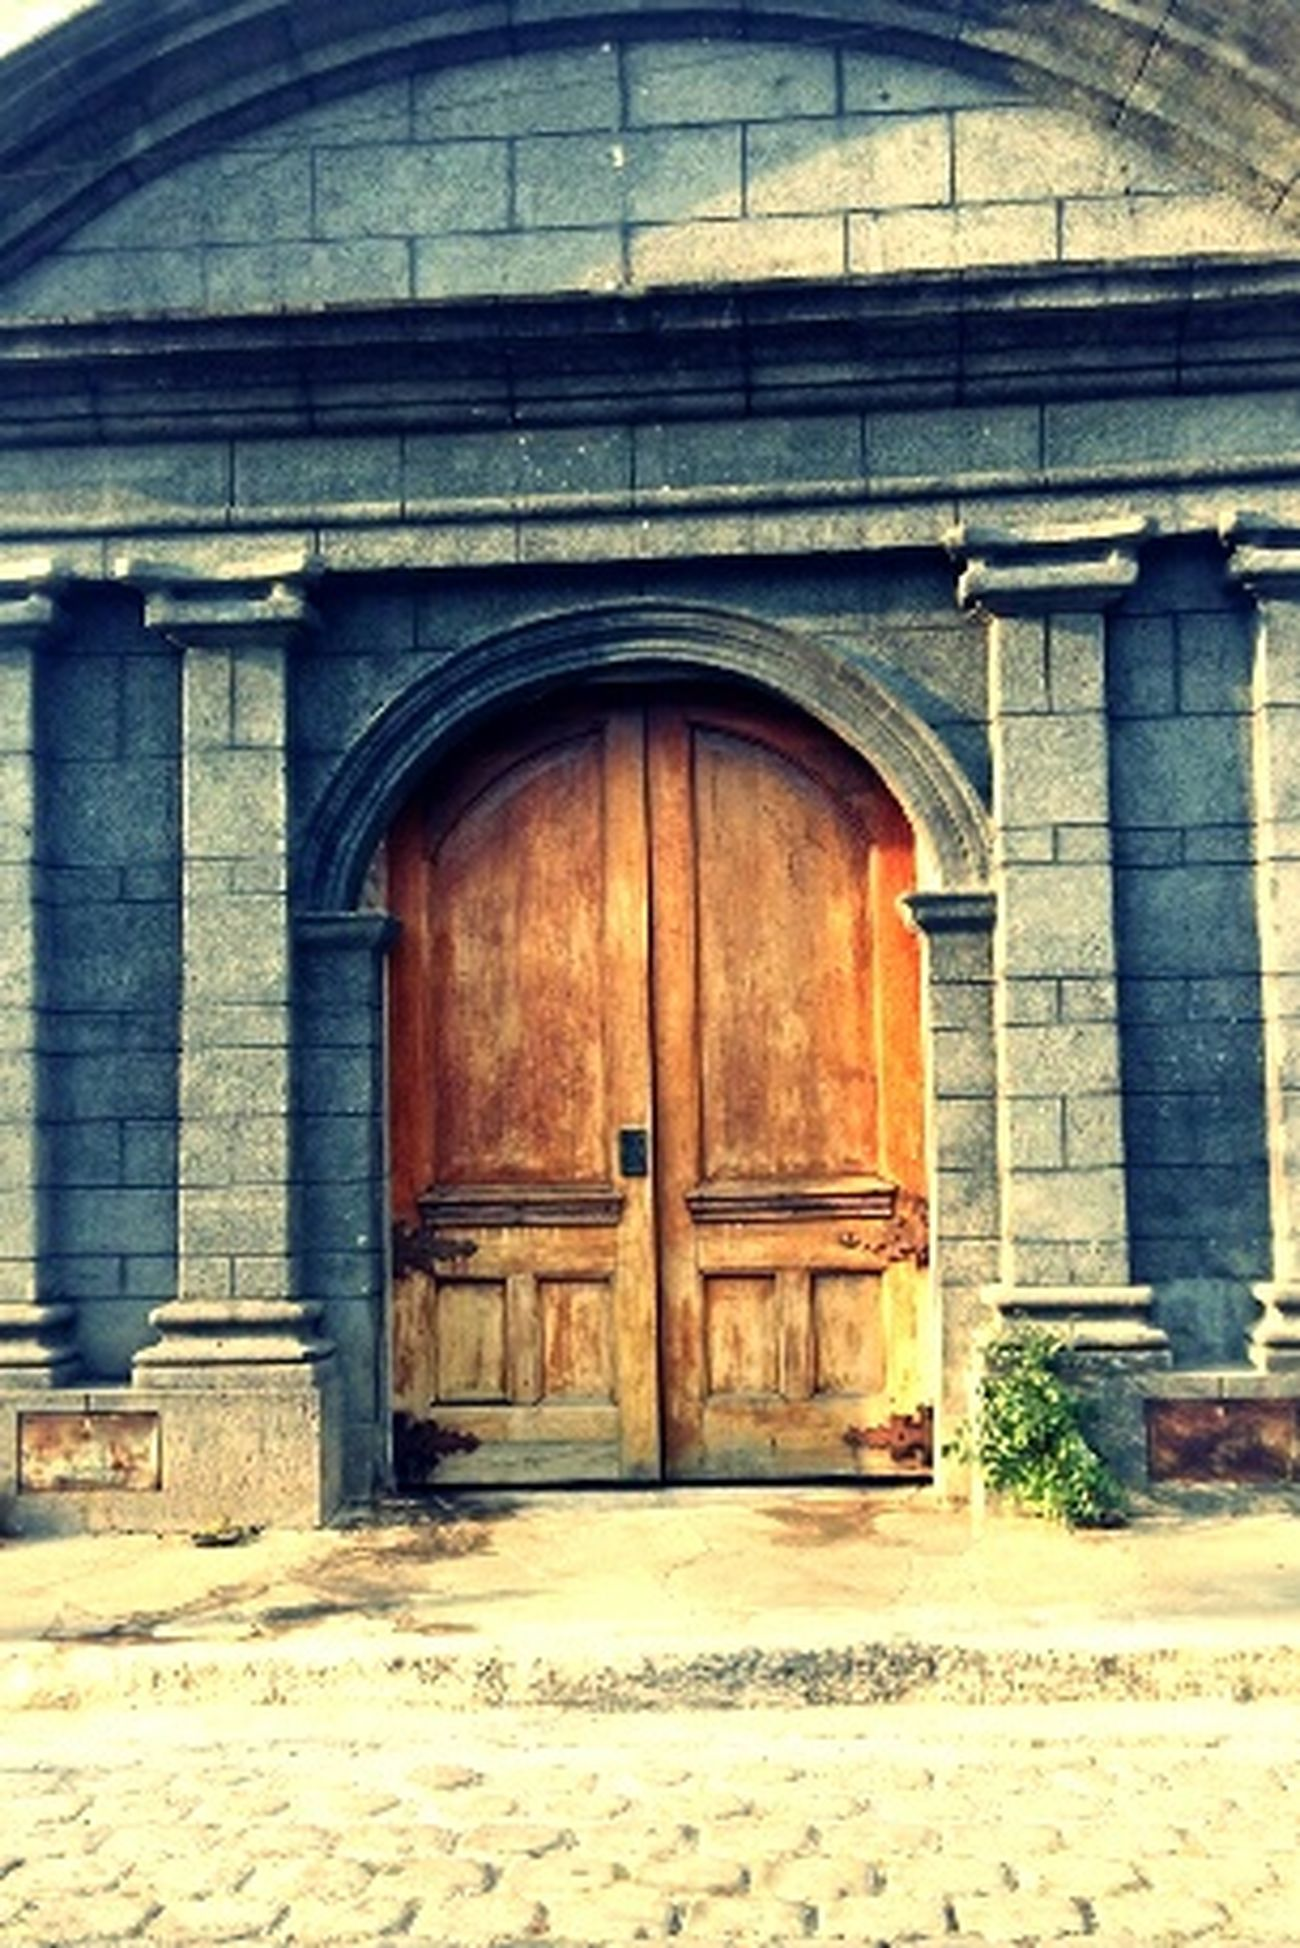 Doors Lover Entrance Architecture Outdoors Townsville Art Is Everywhere Historic City No People